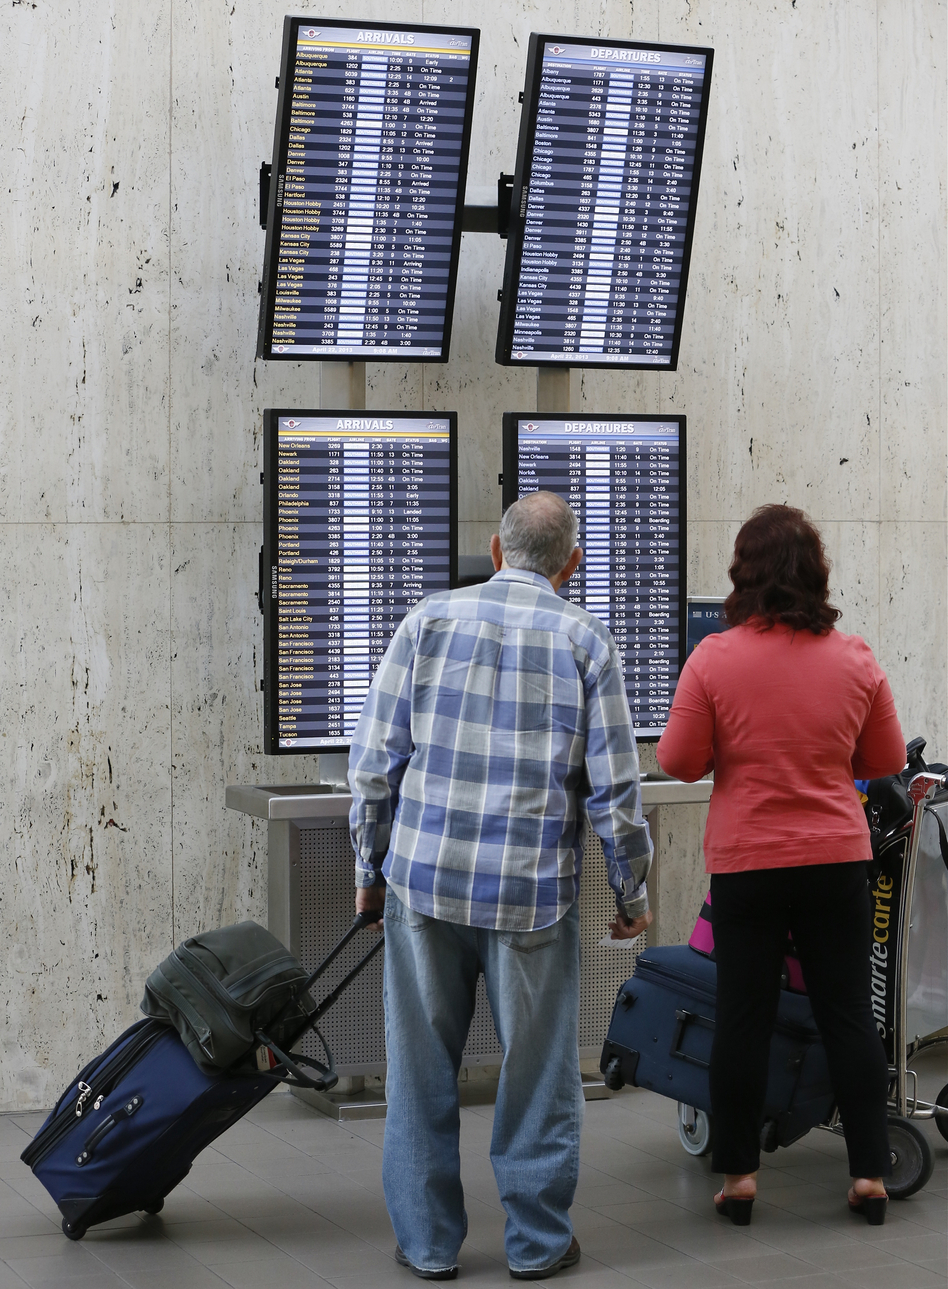 Passengers check their flight status at Los Angeles International airport on Monday. The FAA said staffing cuts were causing delays in the Eastern U.S.